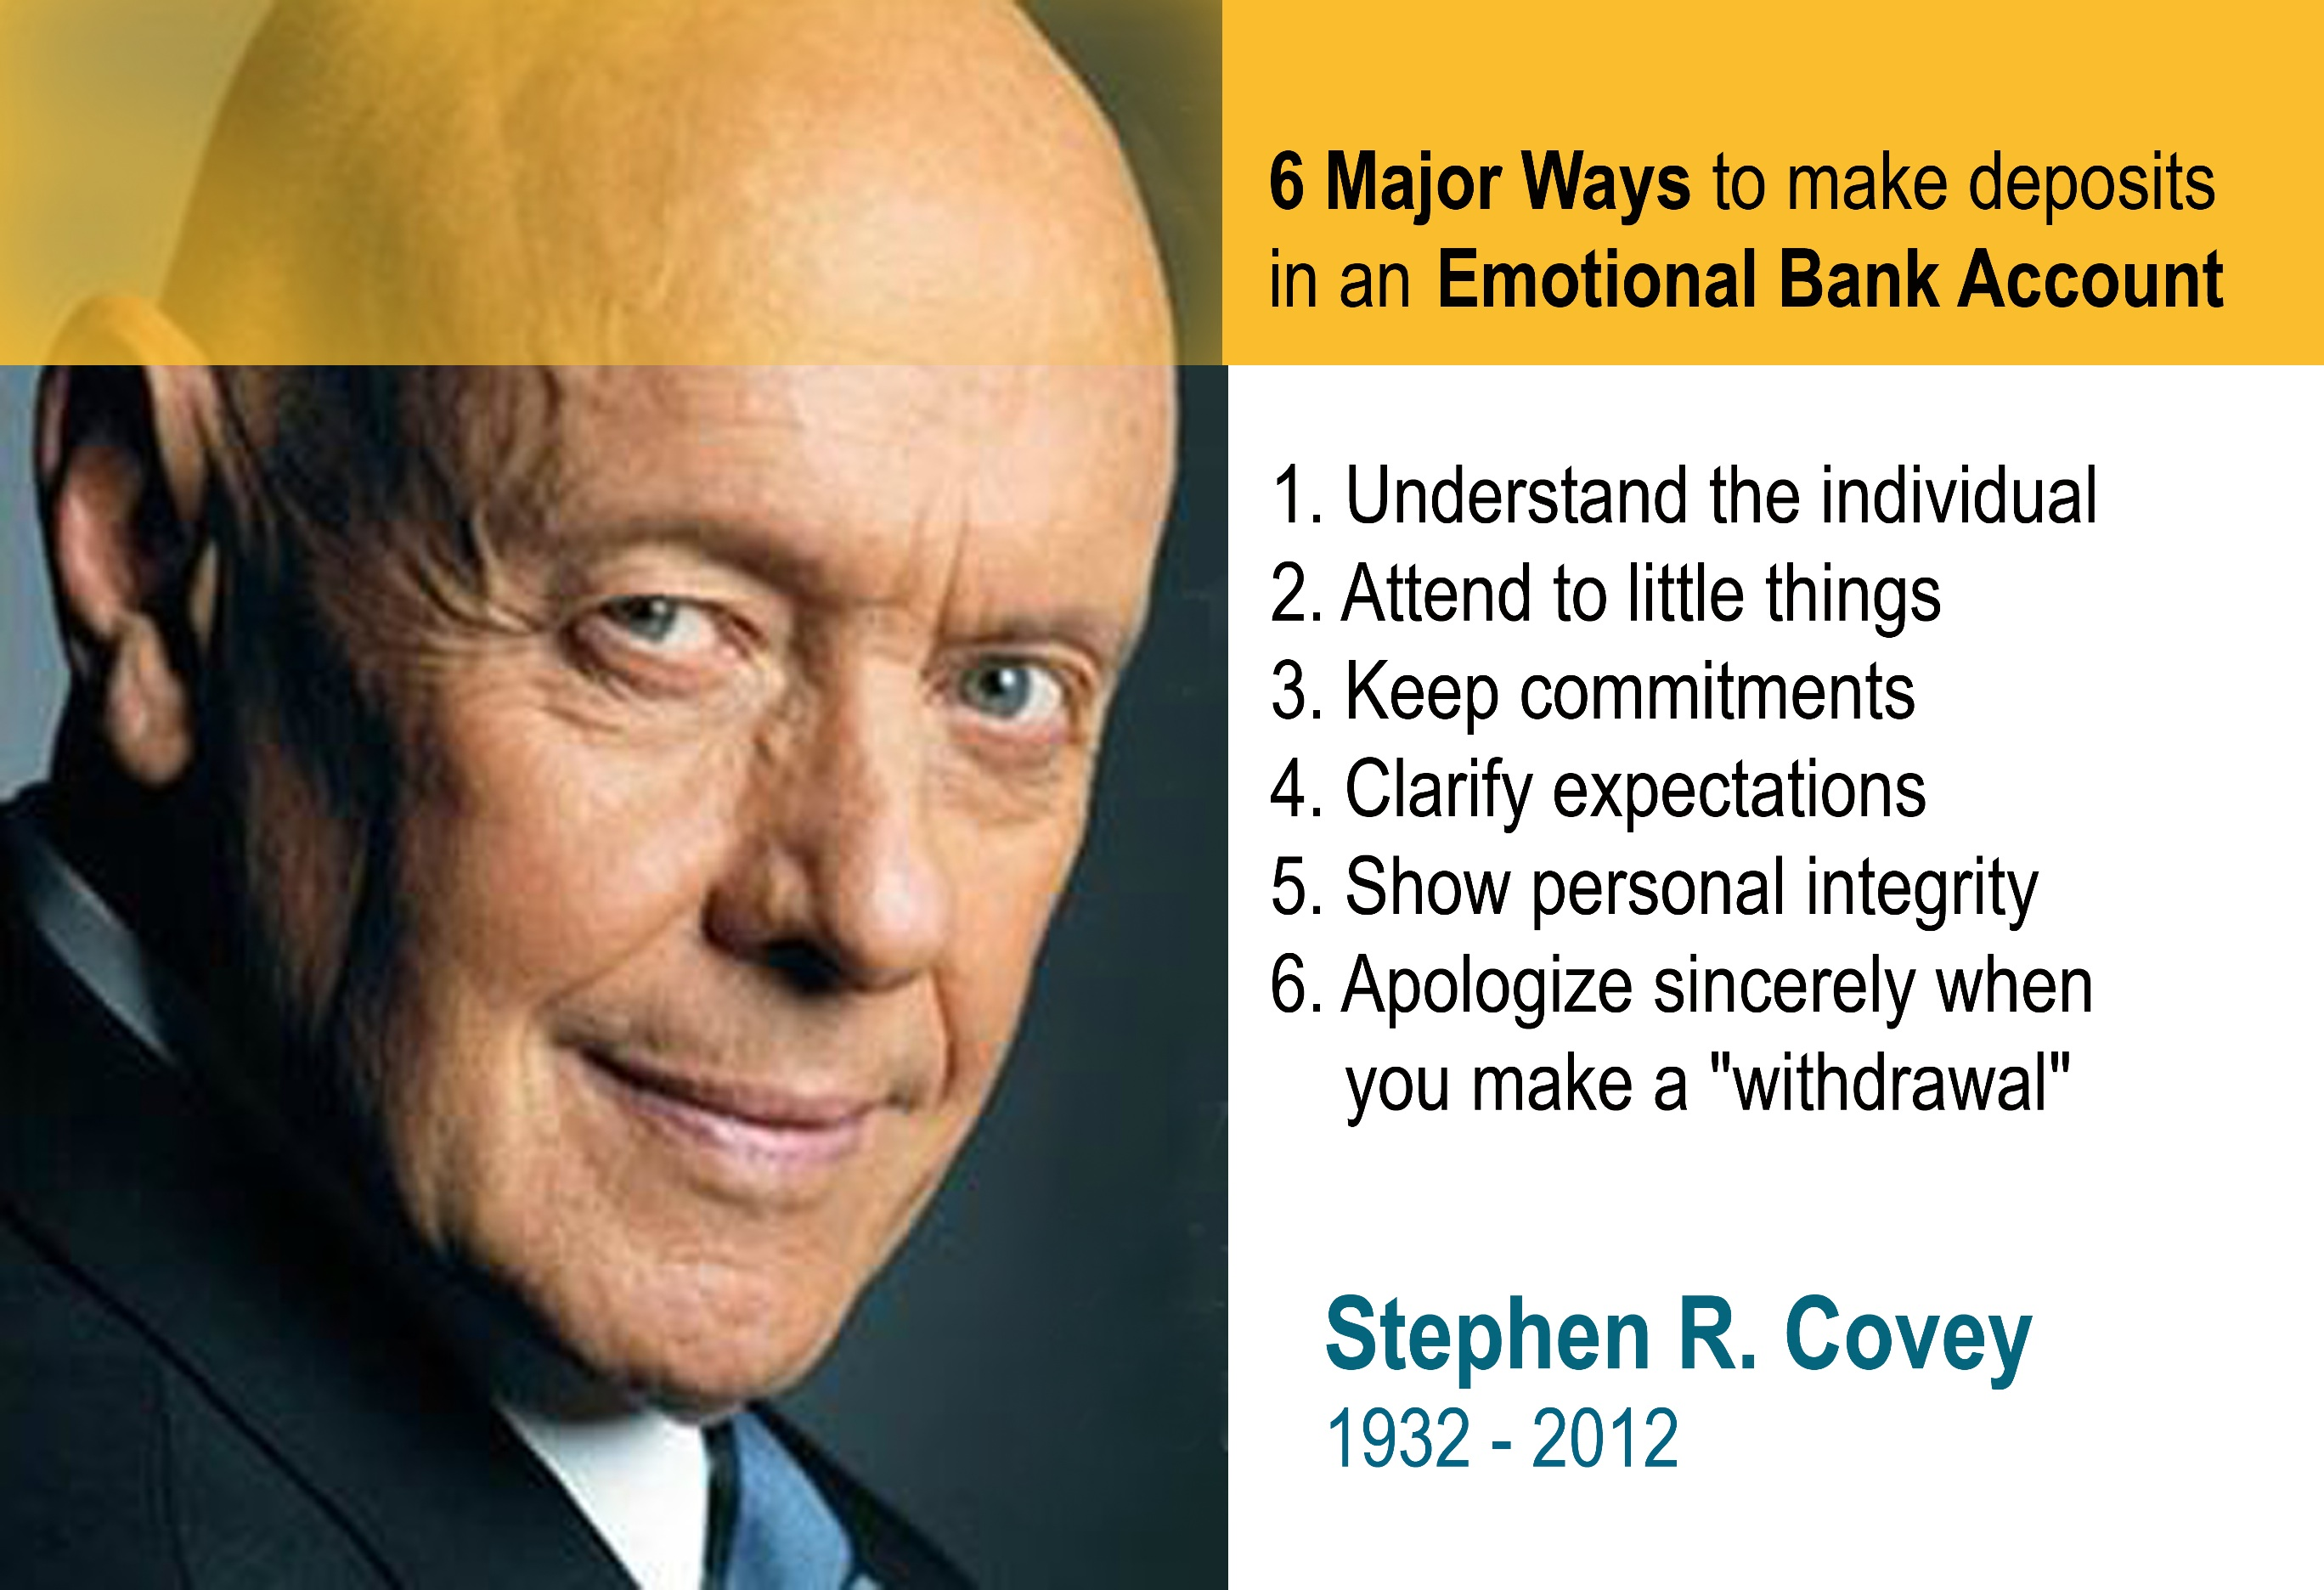 What I Learned From Stephen Covey About Emotional Banking